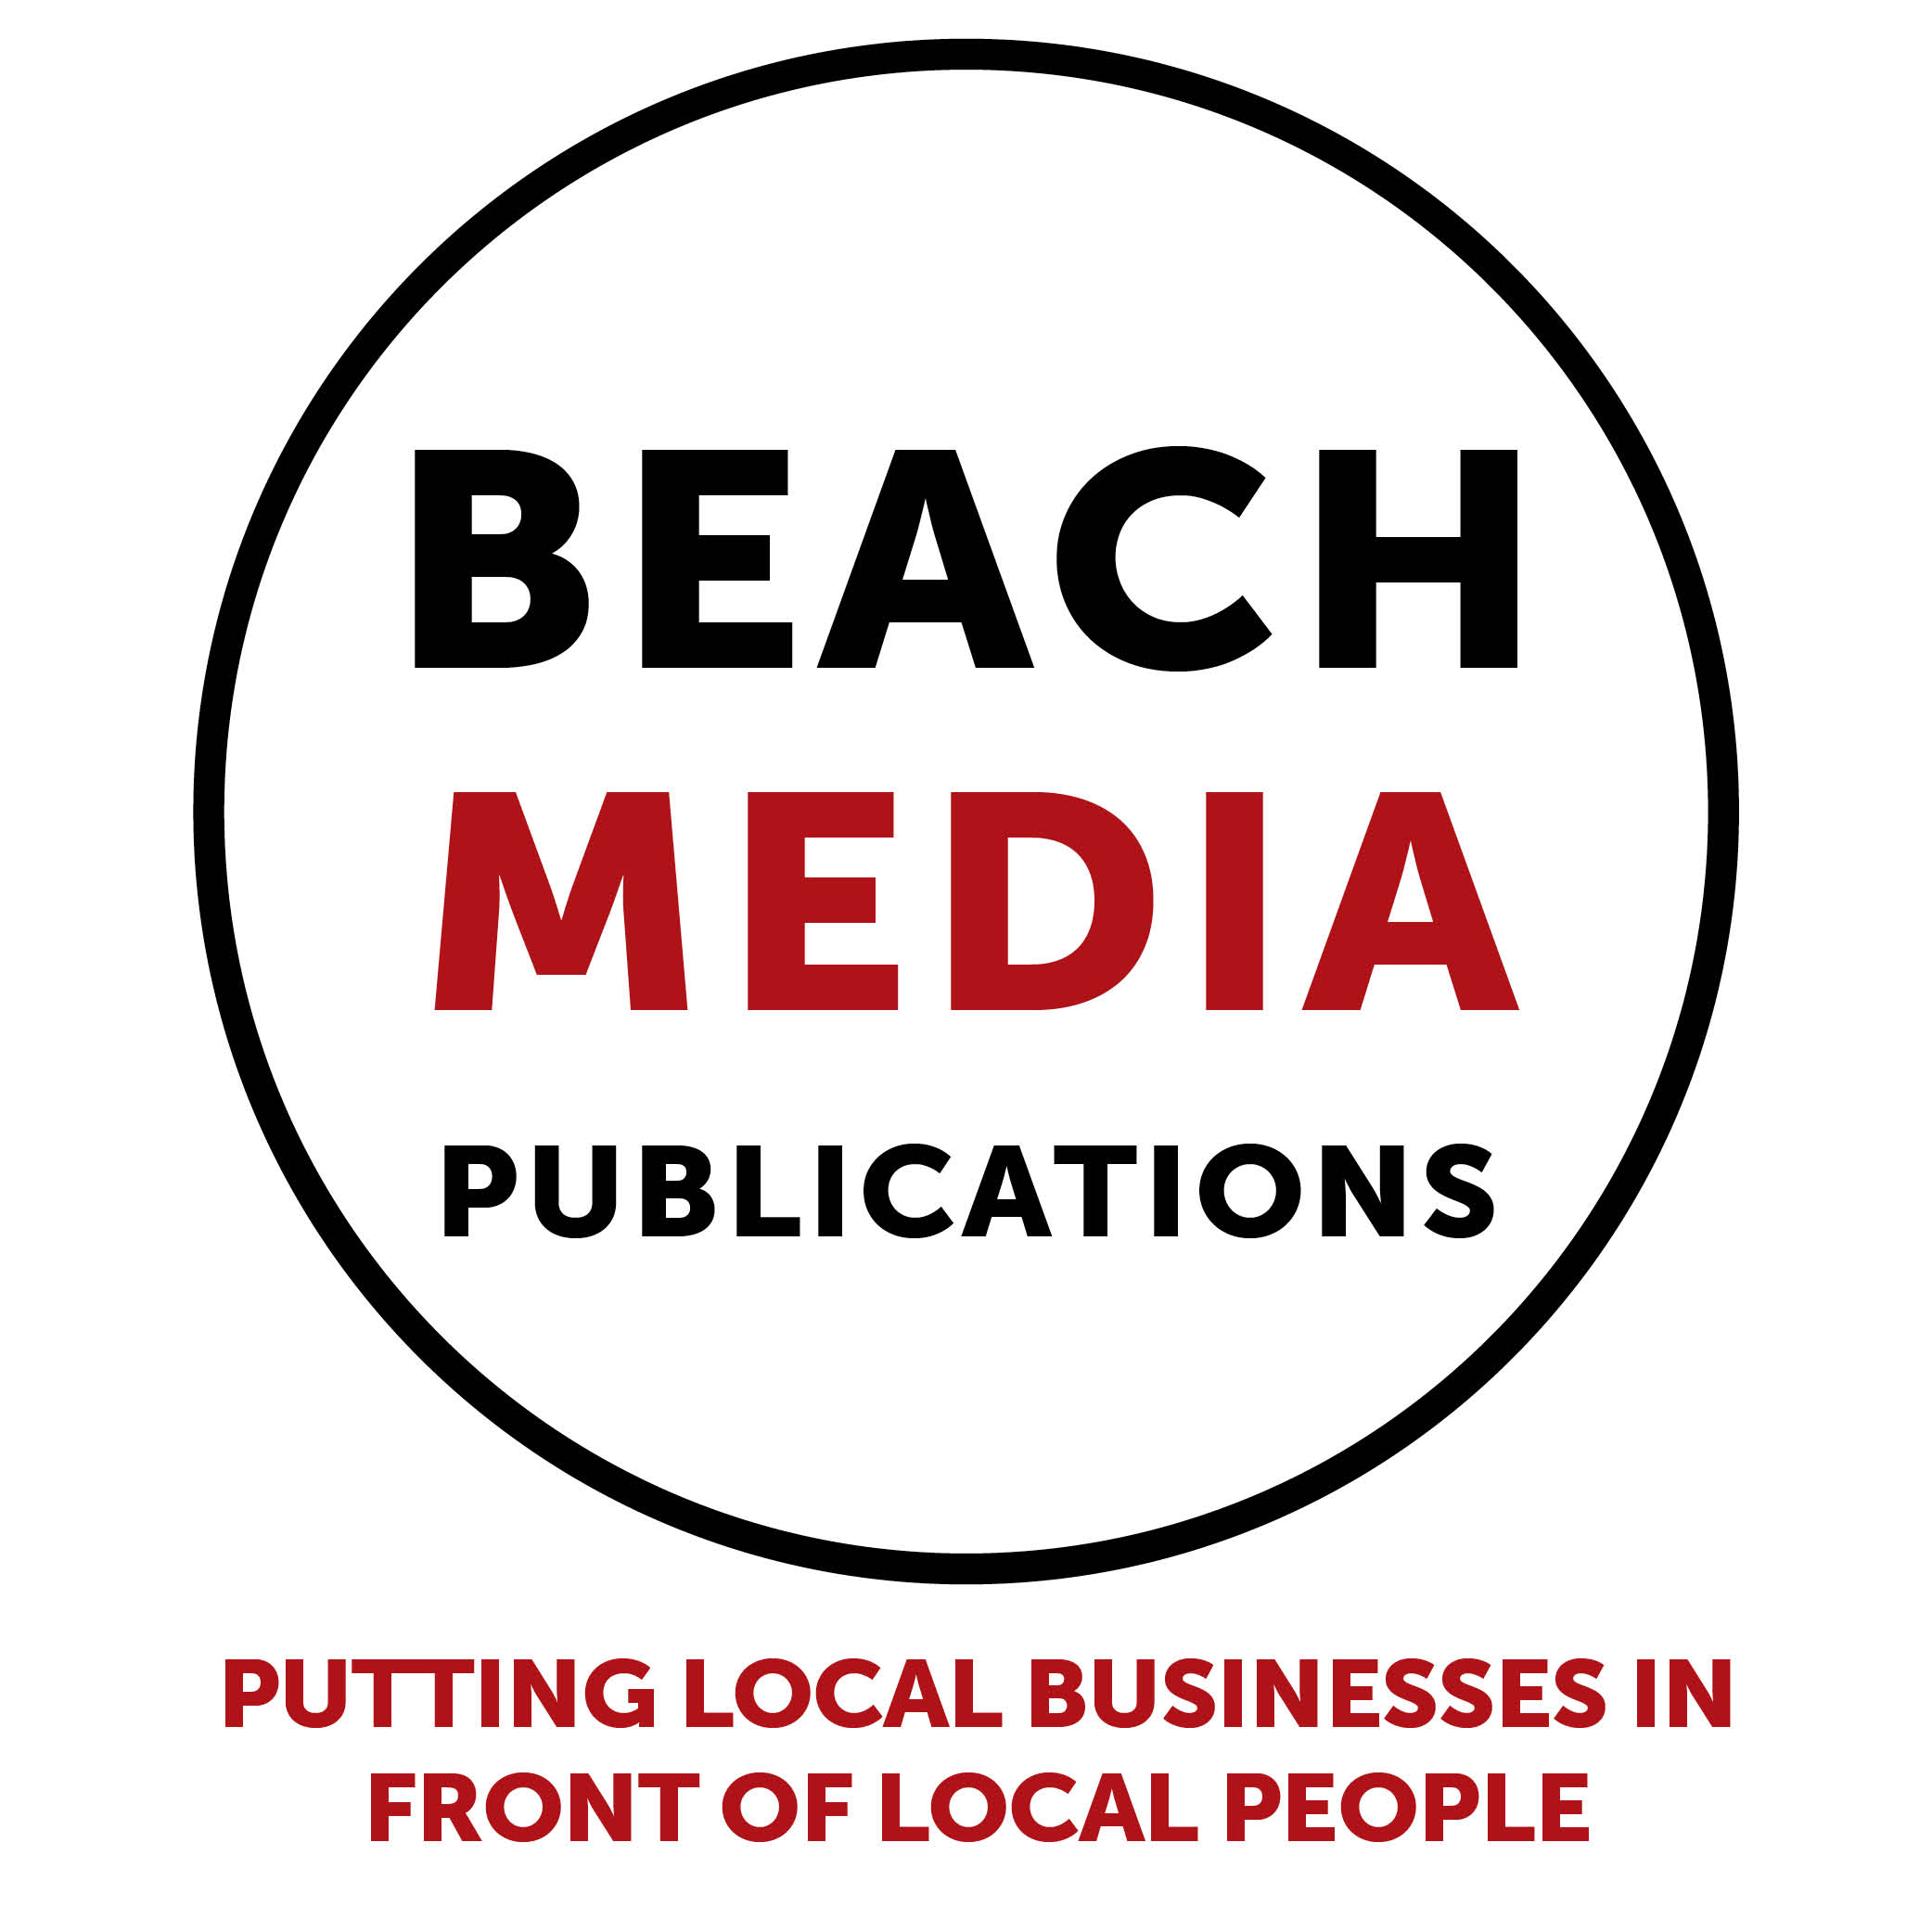 Beach Media Publications